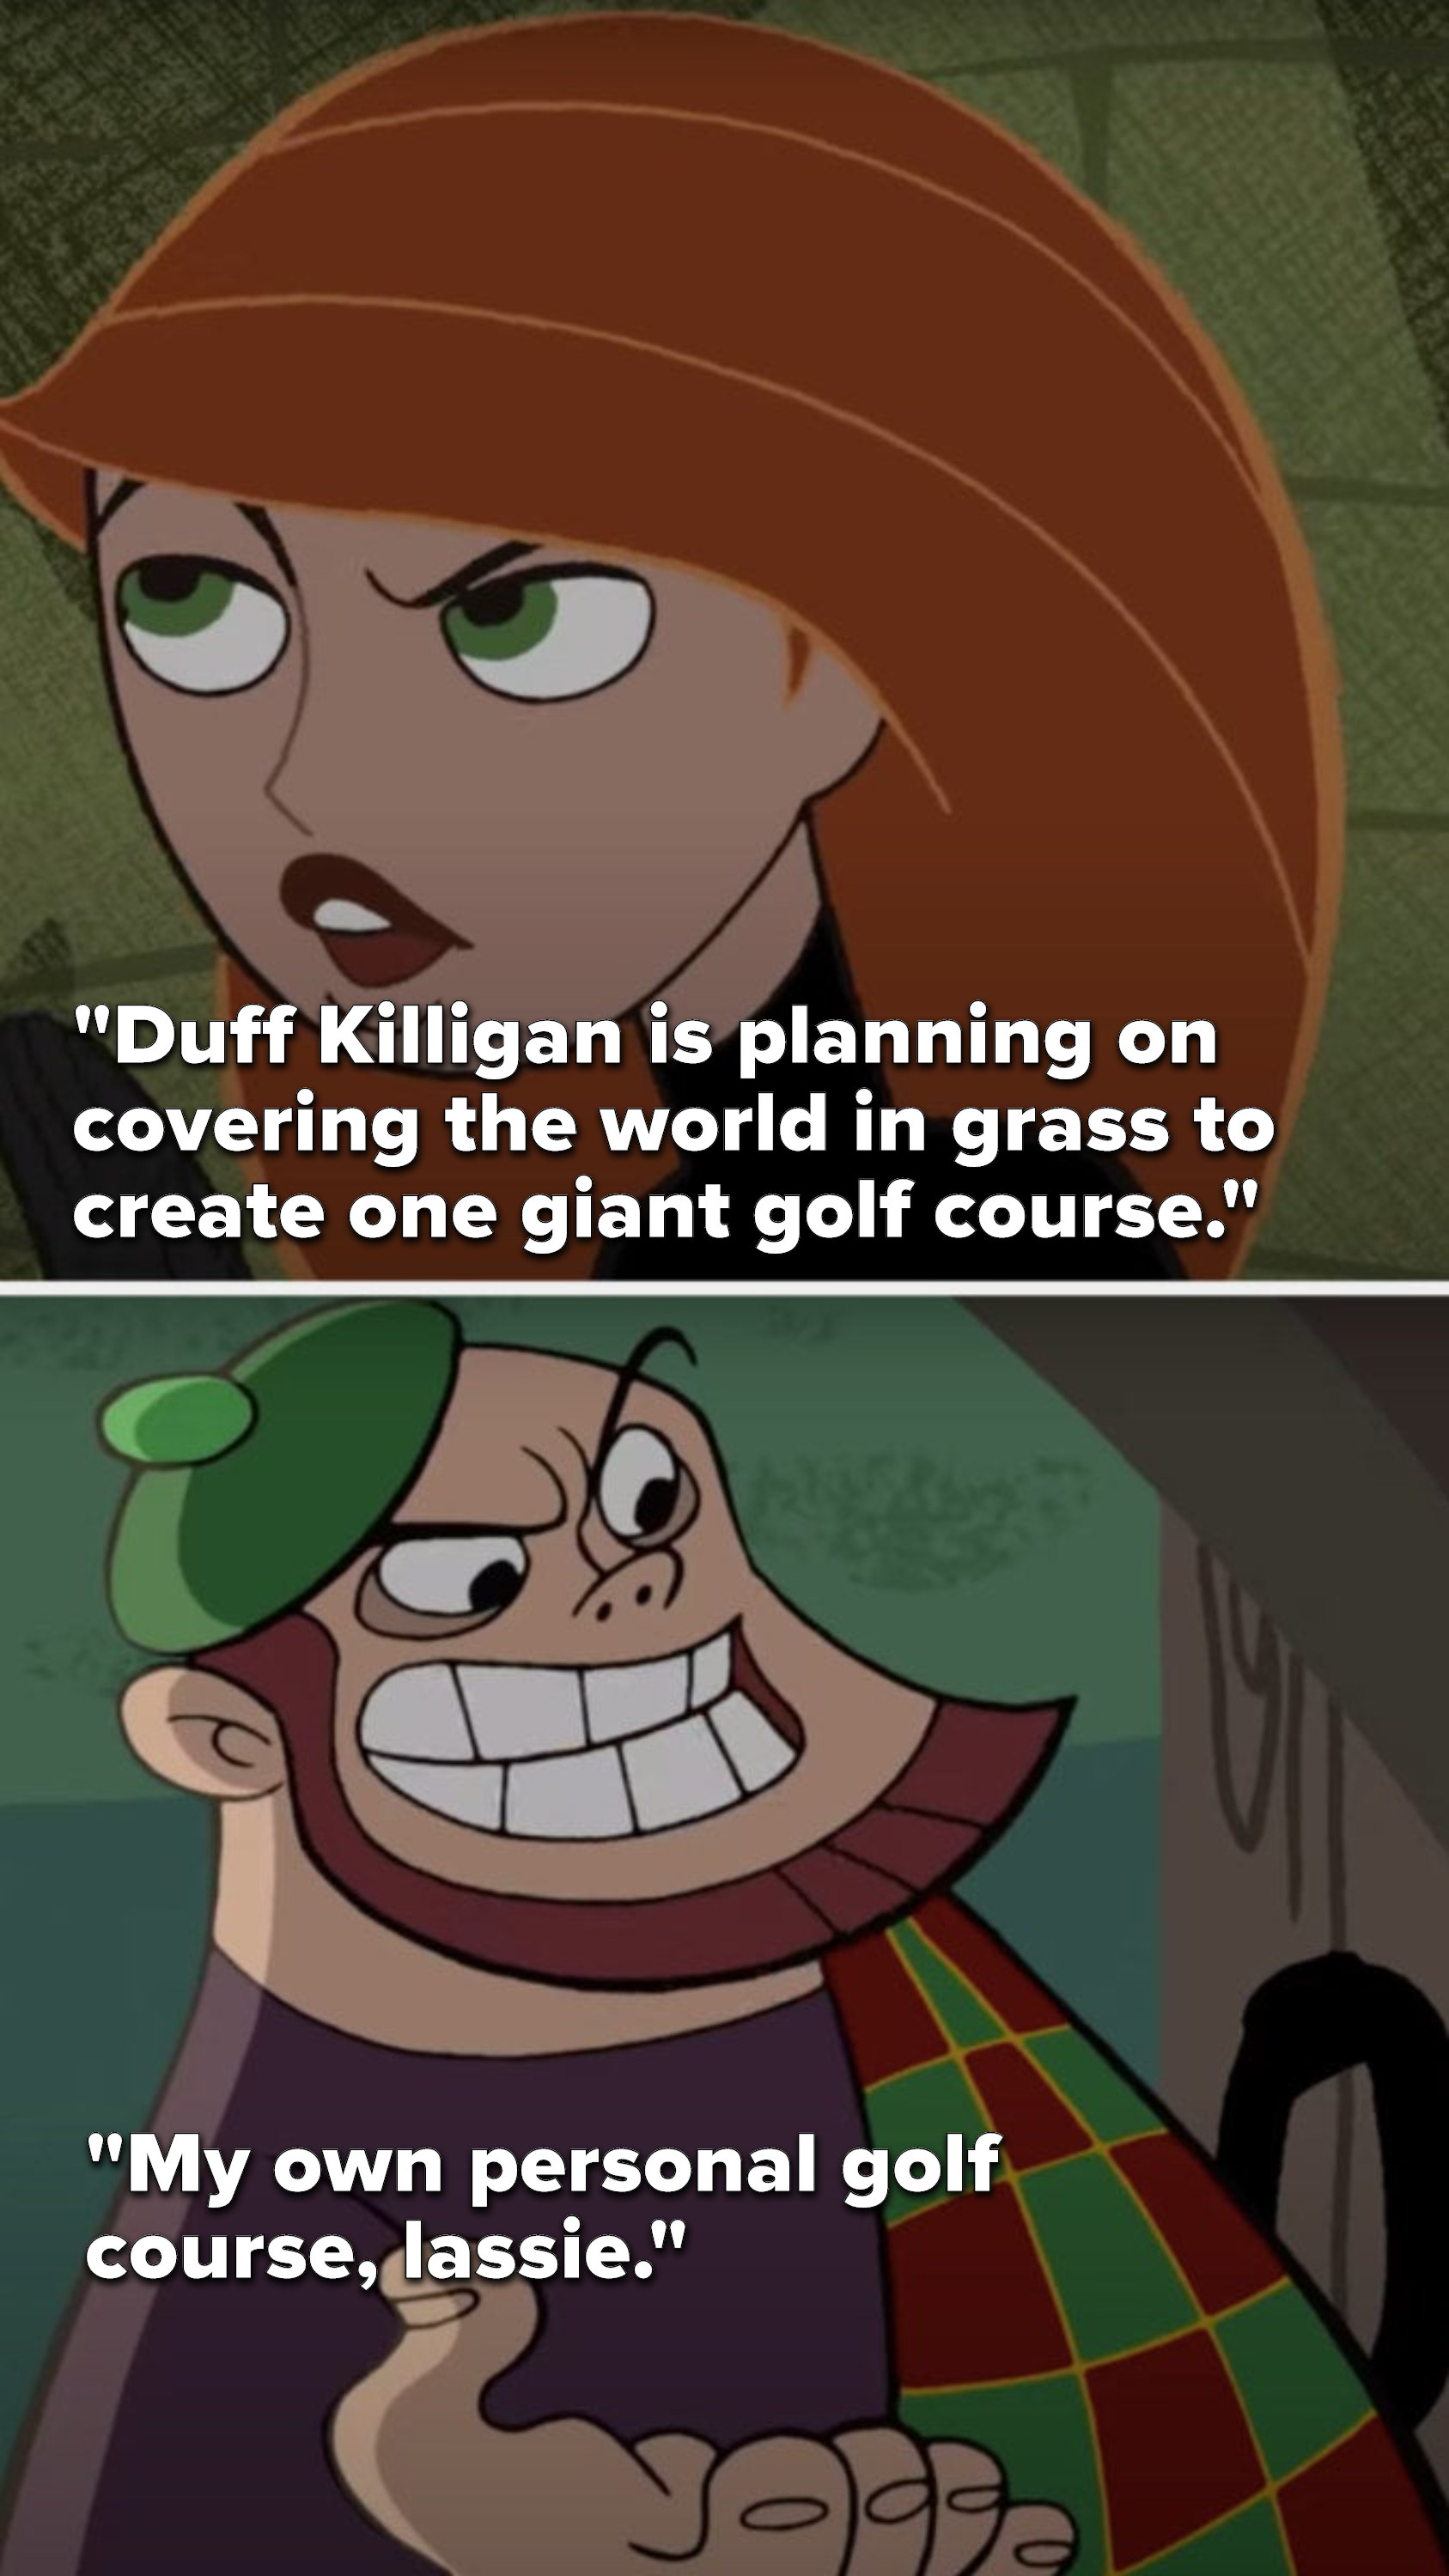 """Kim says, """"Duff Killigan is planning on covering the world in grass to create one giant golf course"""" and Duff says, """"My own personal golf course, lassie"""""""